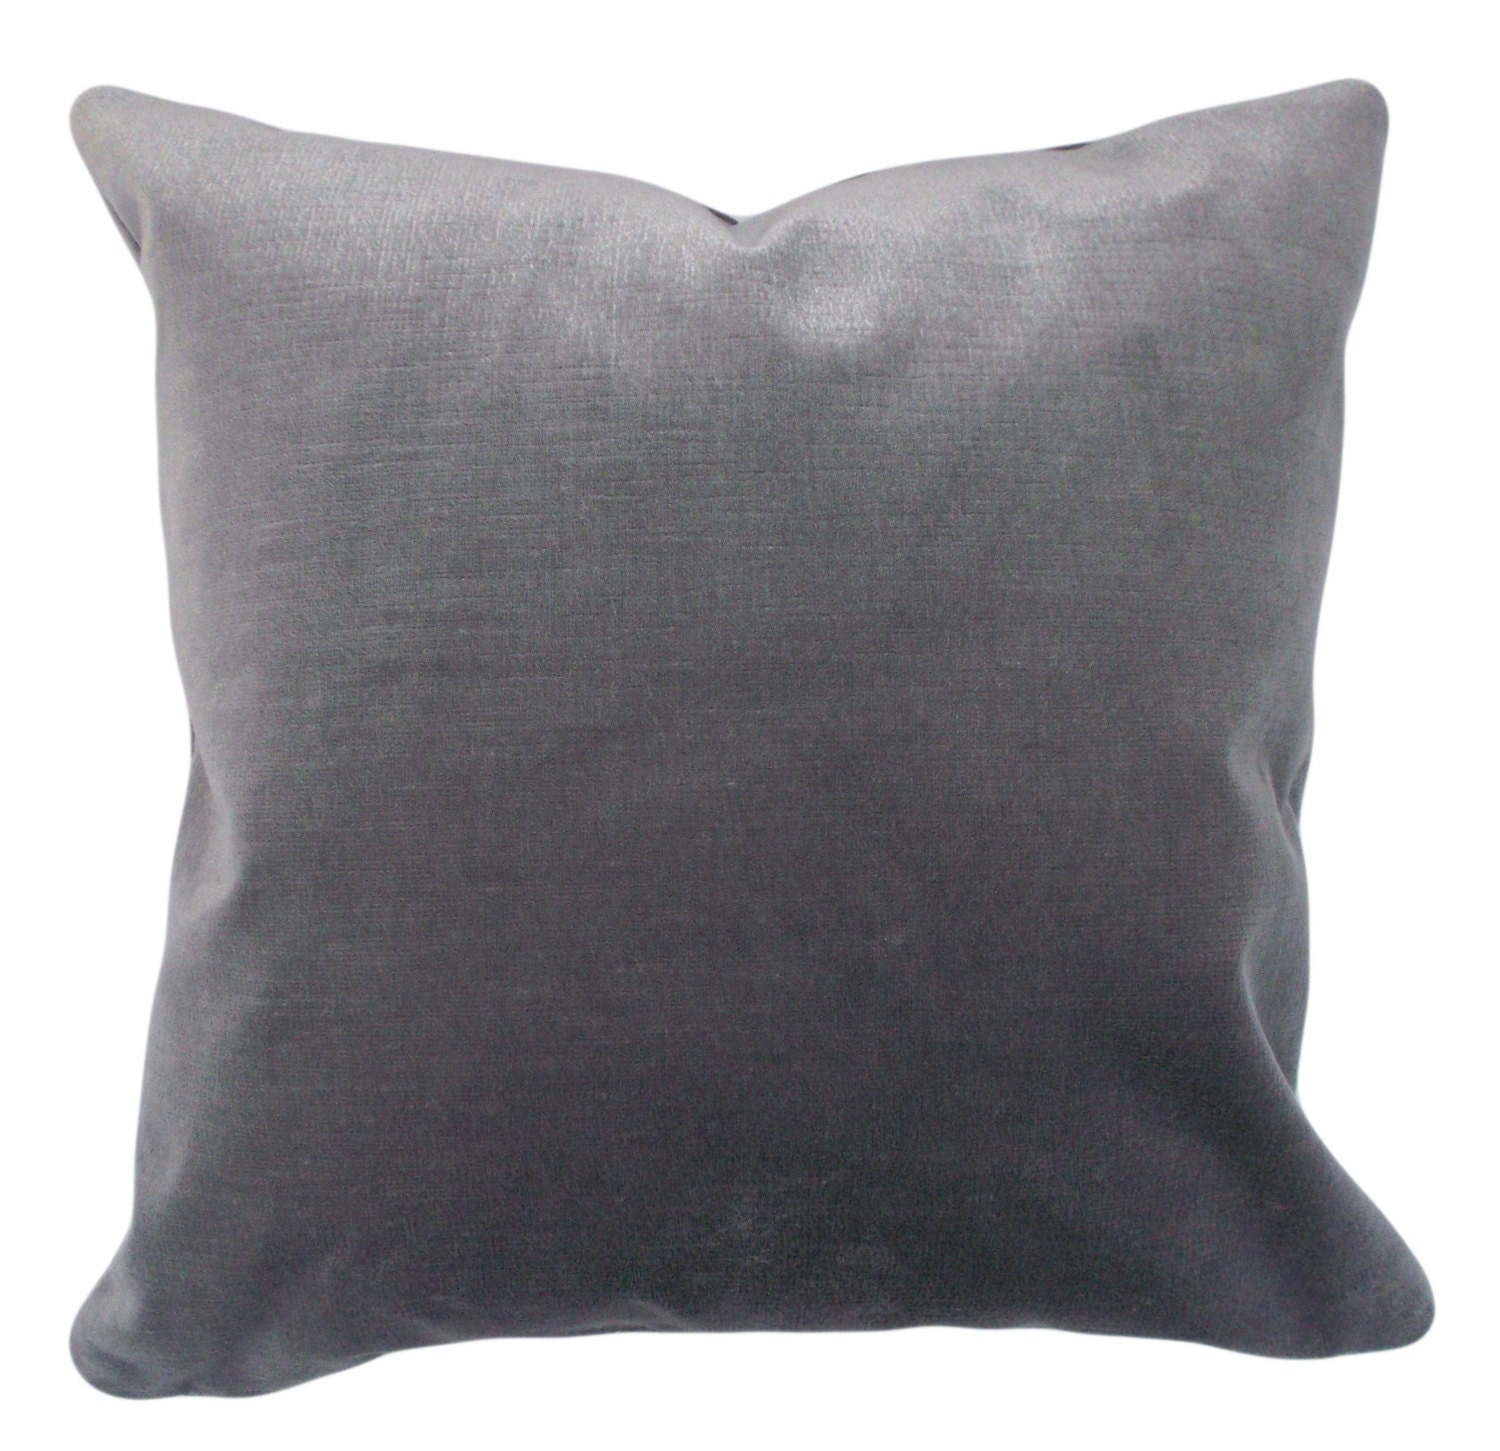 Grey Velvet Decorative Pillow Cover 12x20 14x24 18x18